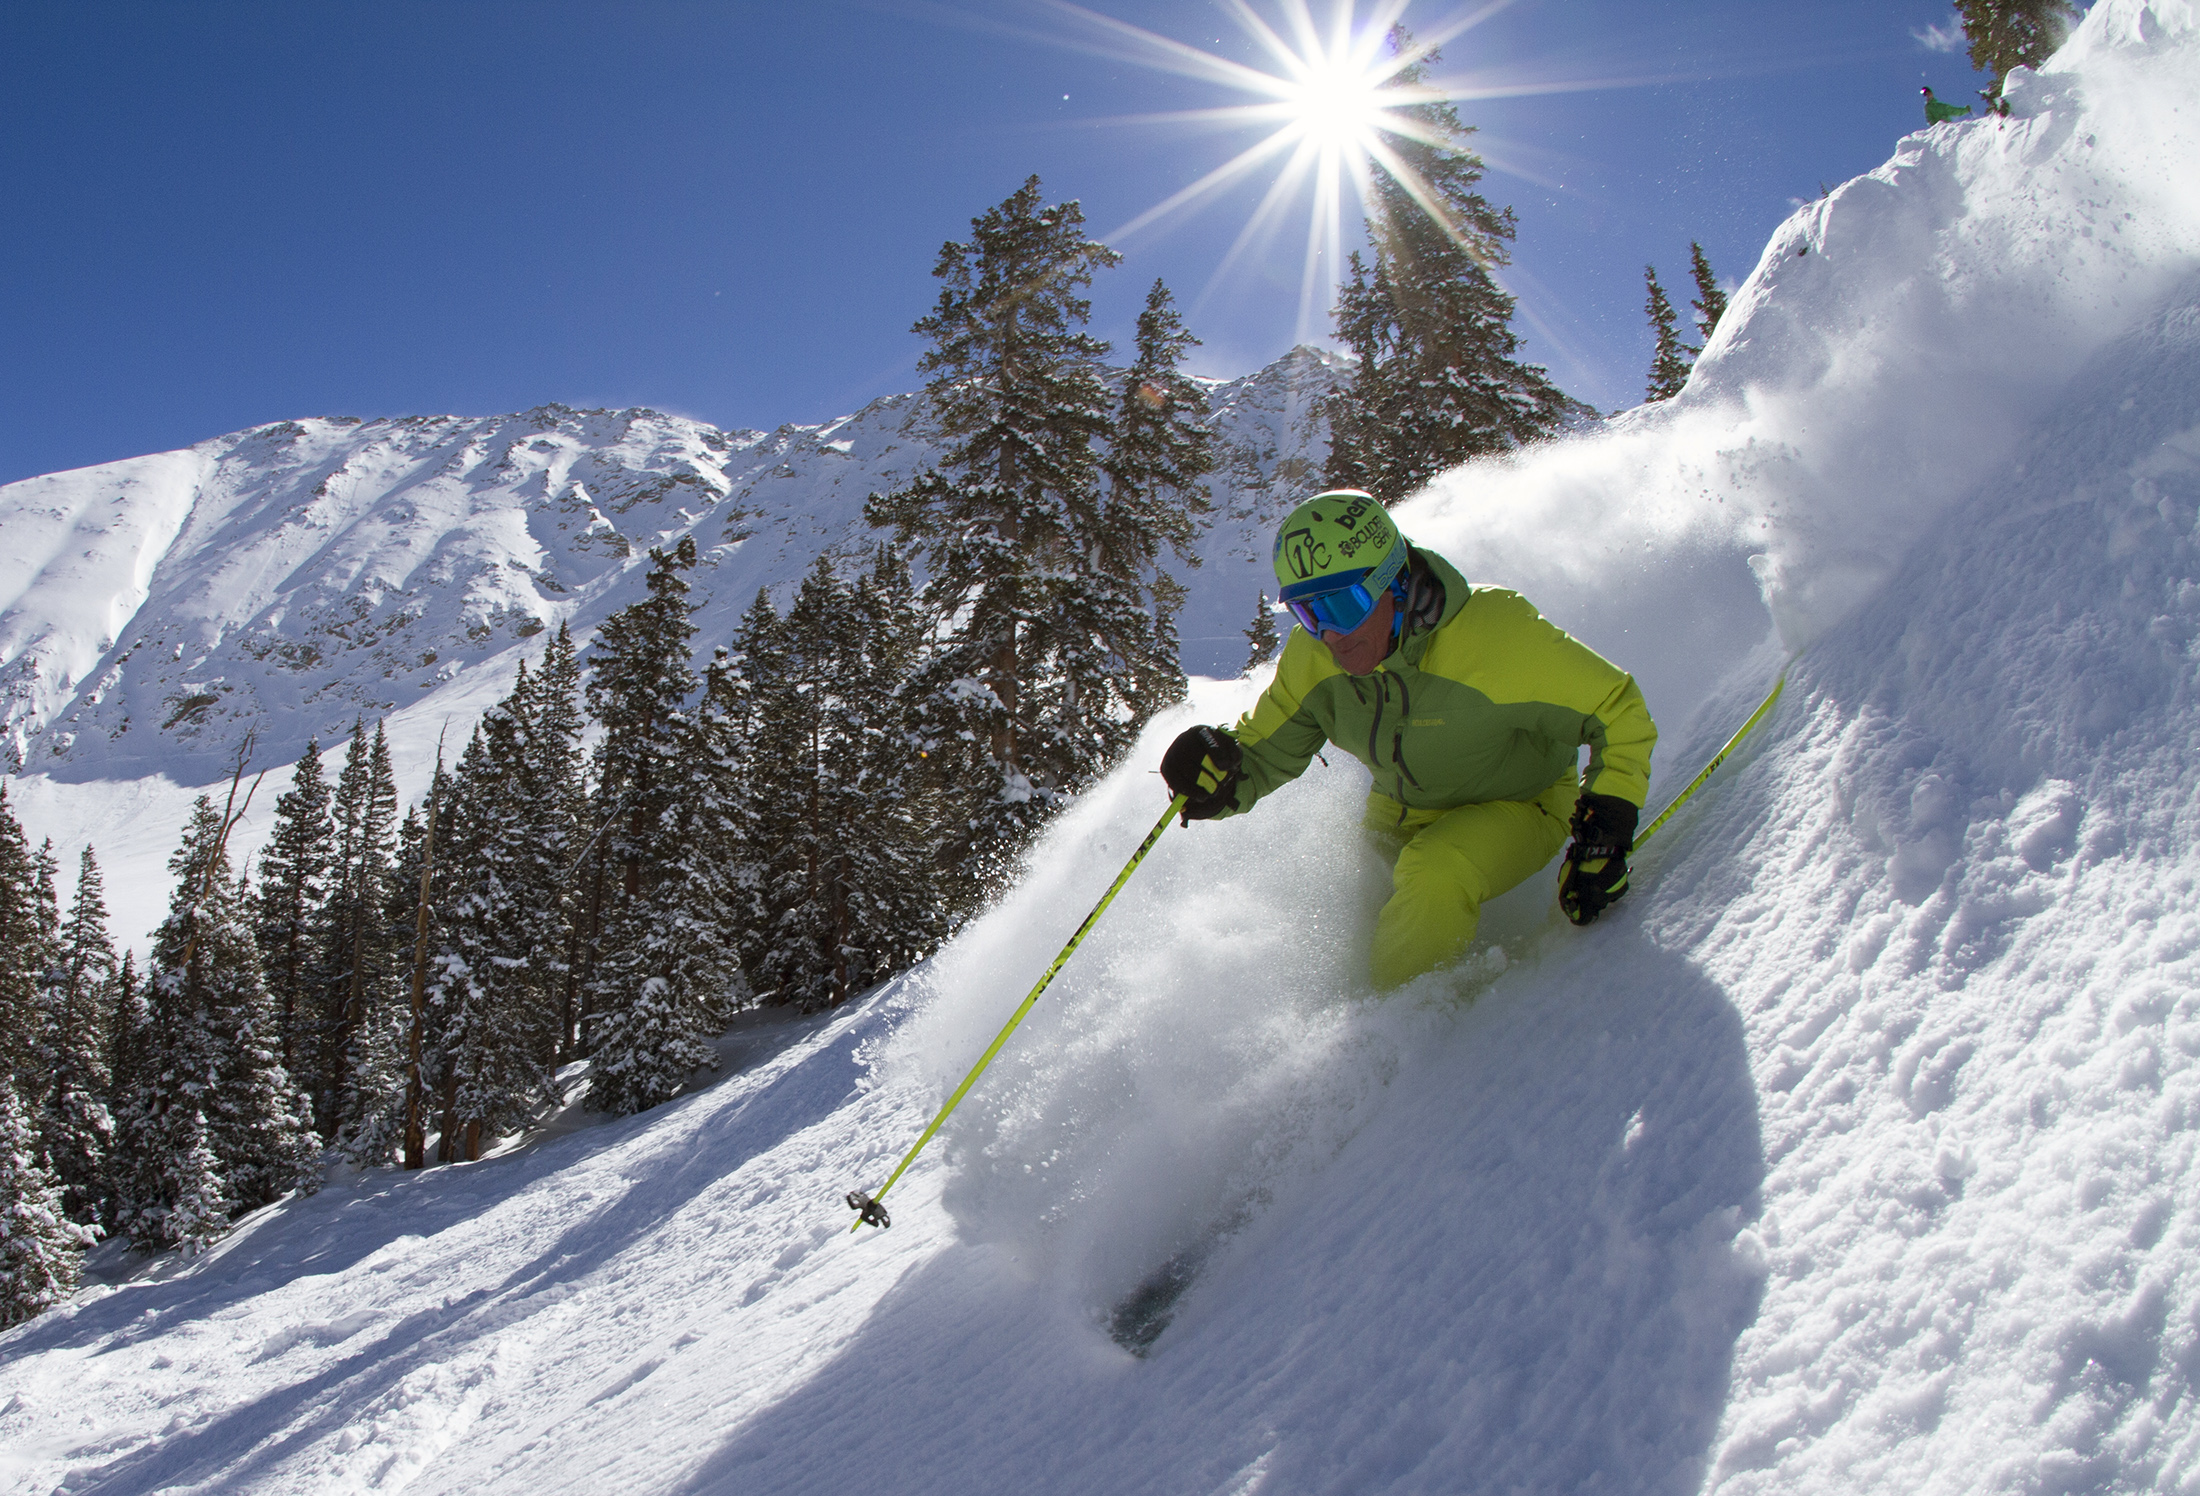 Photo taken at Arapahoe Basin Ski Area by Casey Day of Silver Plume.